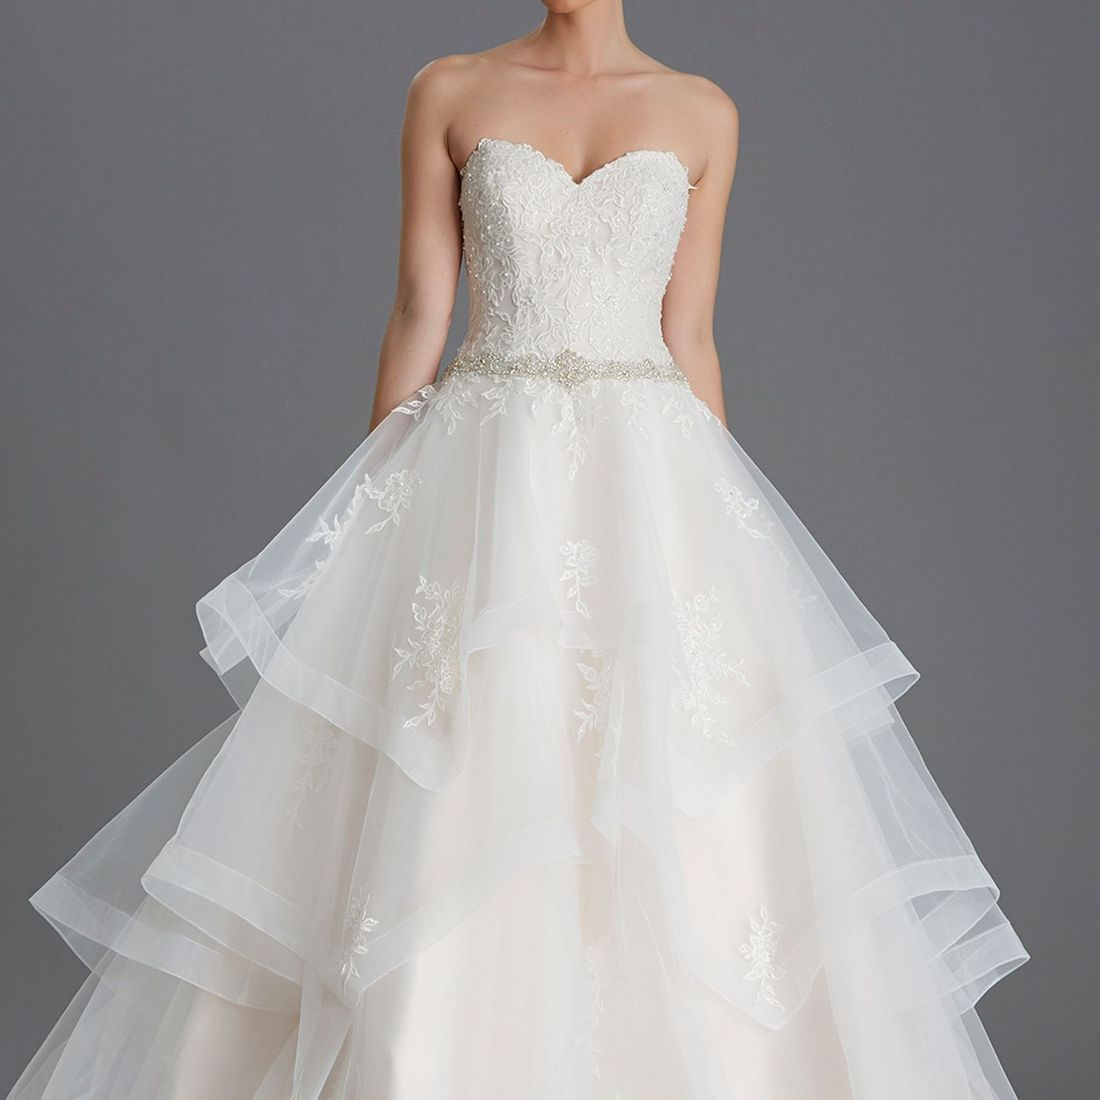 Strapless crystal bodice, layered tulle skirt